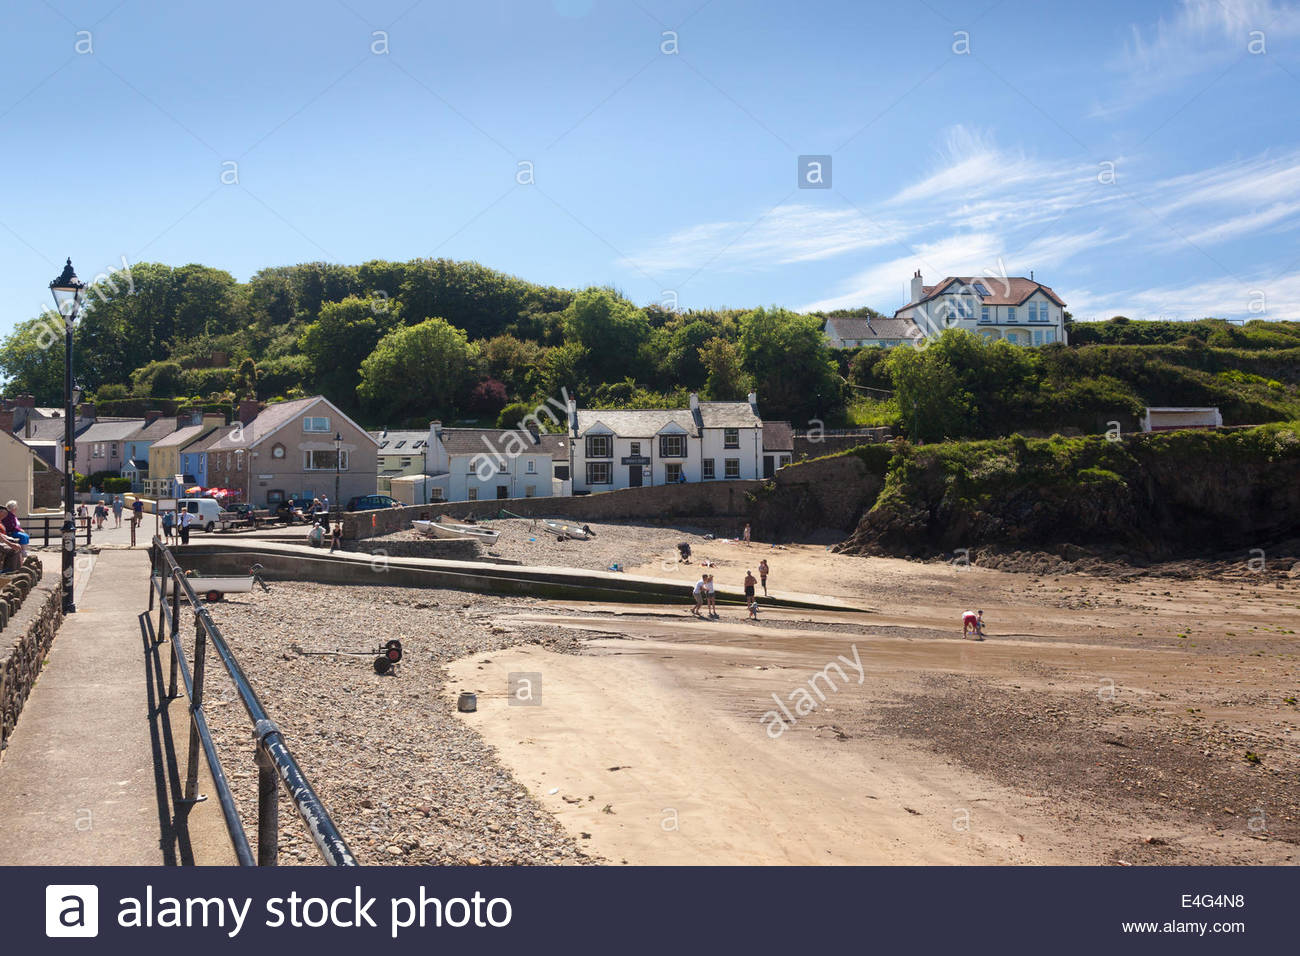 Seafront Little Haven Pembrokeshire Wales Britain UK - Stock Image